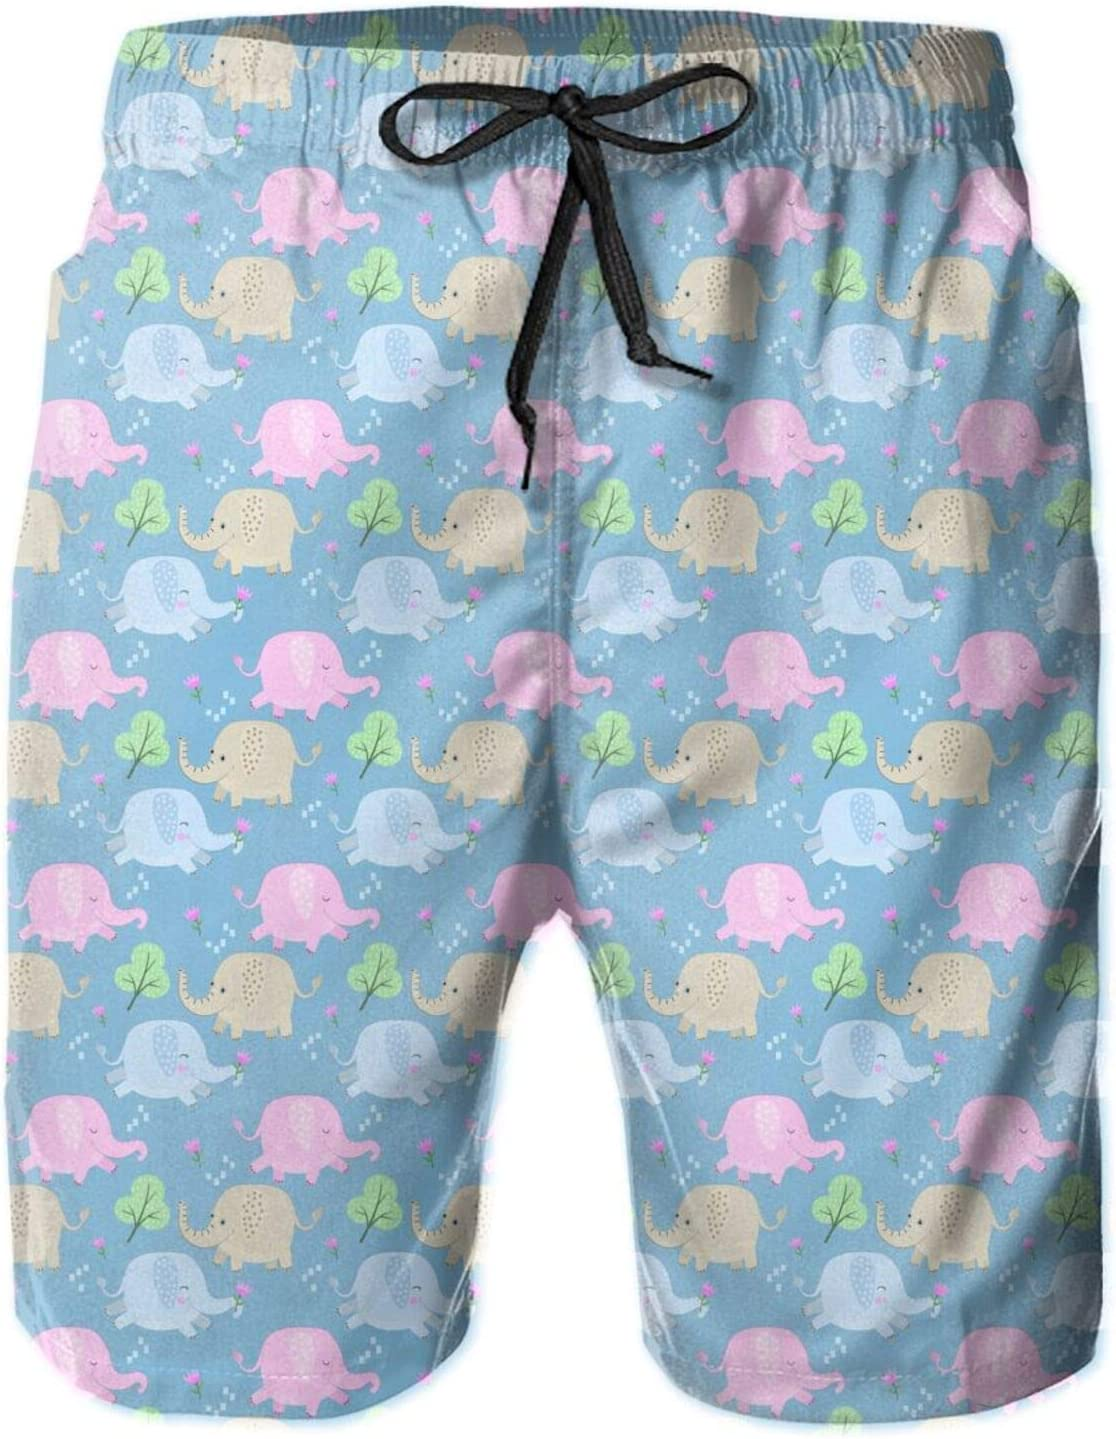 pengyong Cute Colorful Cartoon Elephant Pattern Summer Underwear Board Shorts Bathing Suits Holiday Swim Trunks Quick Dry